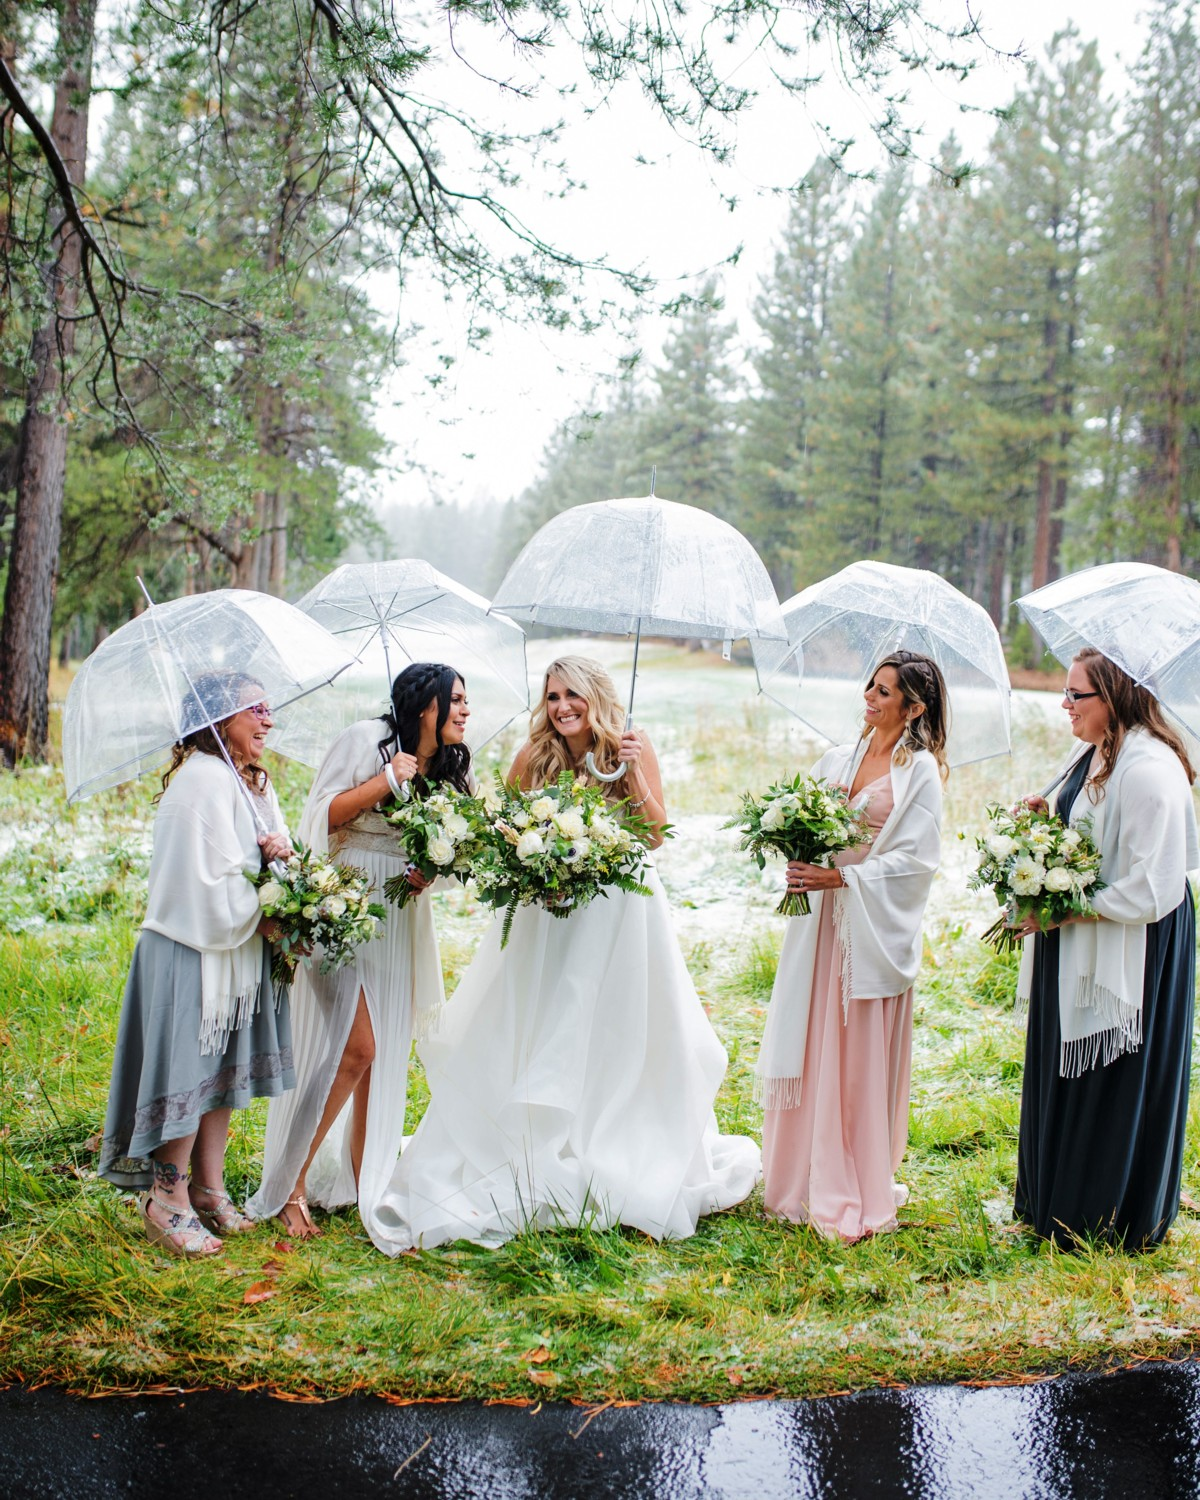 Marcella Camille Events - Lake Tahoe wedding planner - bridal party with umbrellas